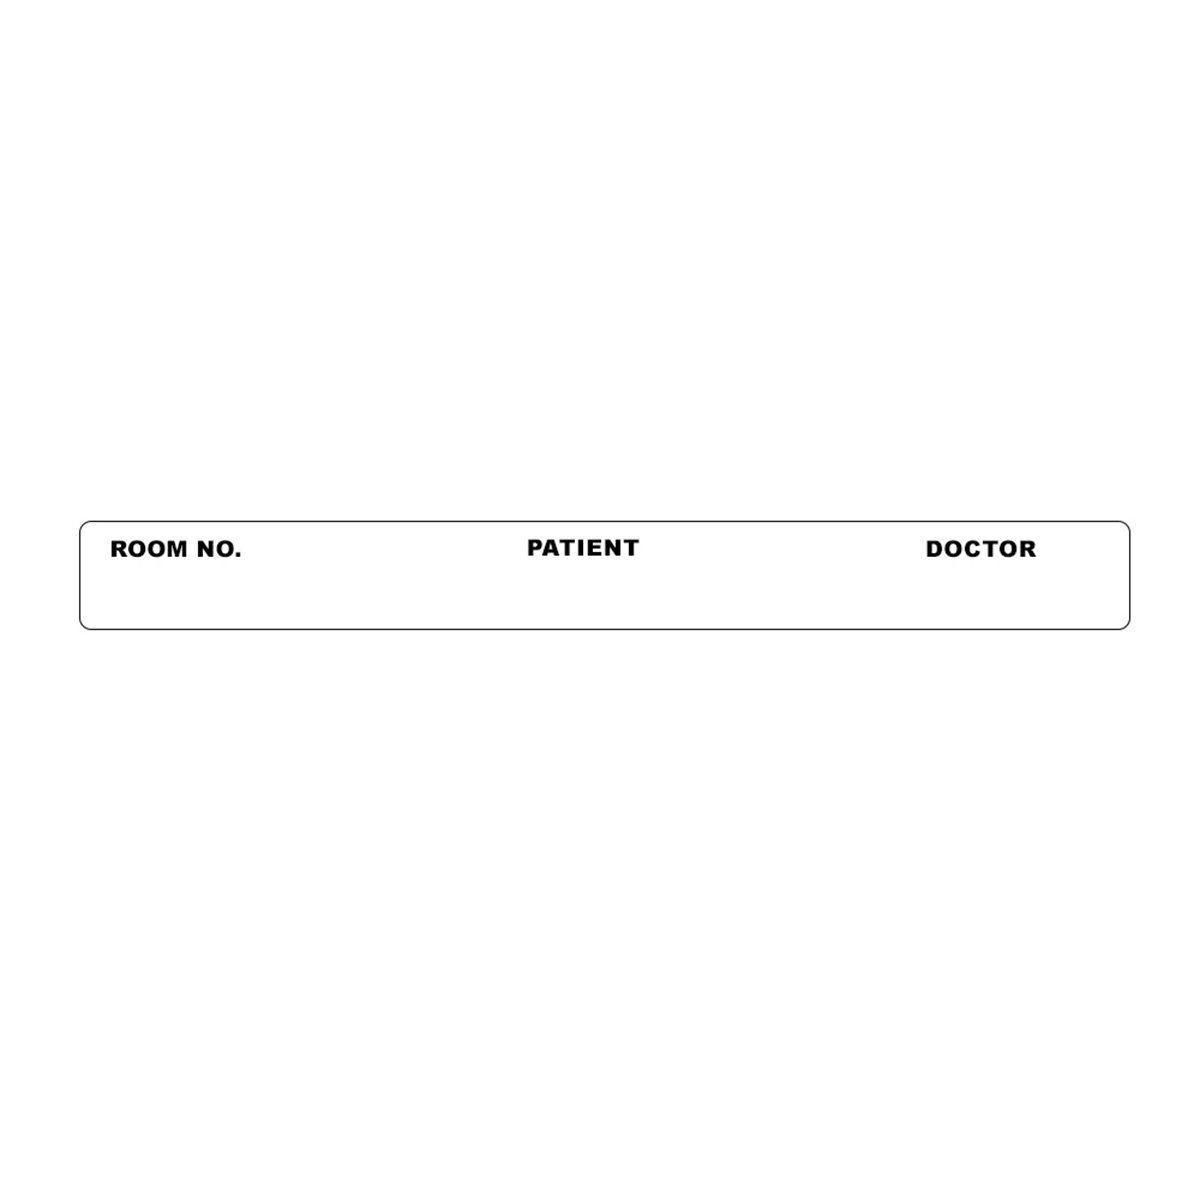 PDC Healthcare 59704824 Removable Label Paper, Room Number/Patient, 4'' x 3/8'', White (Pack of 500)